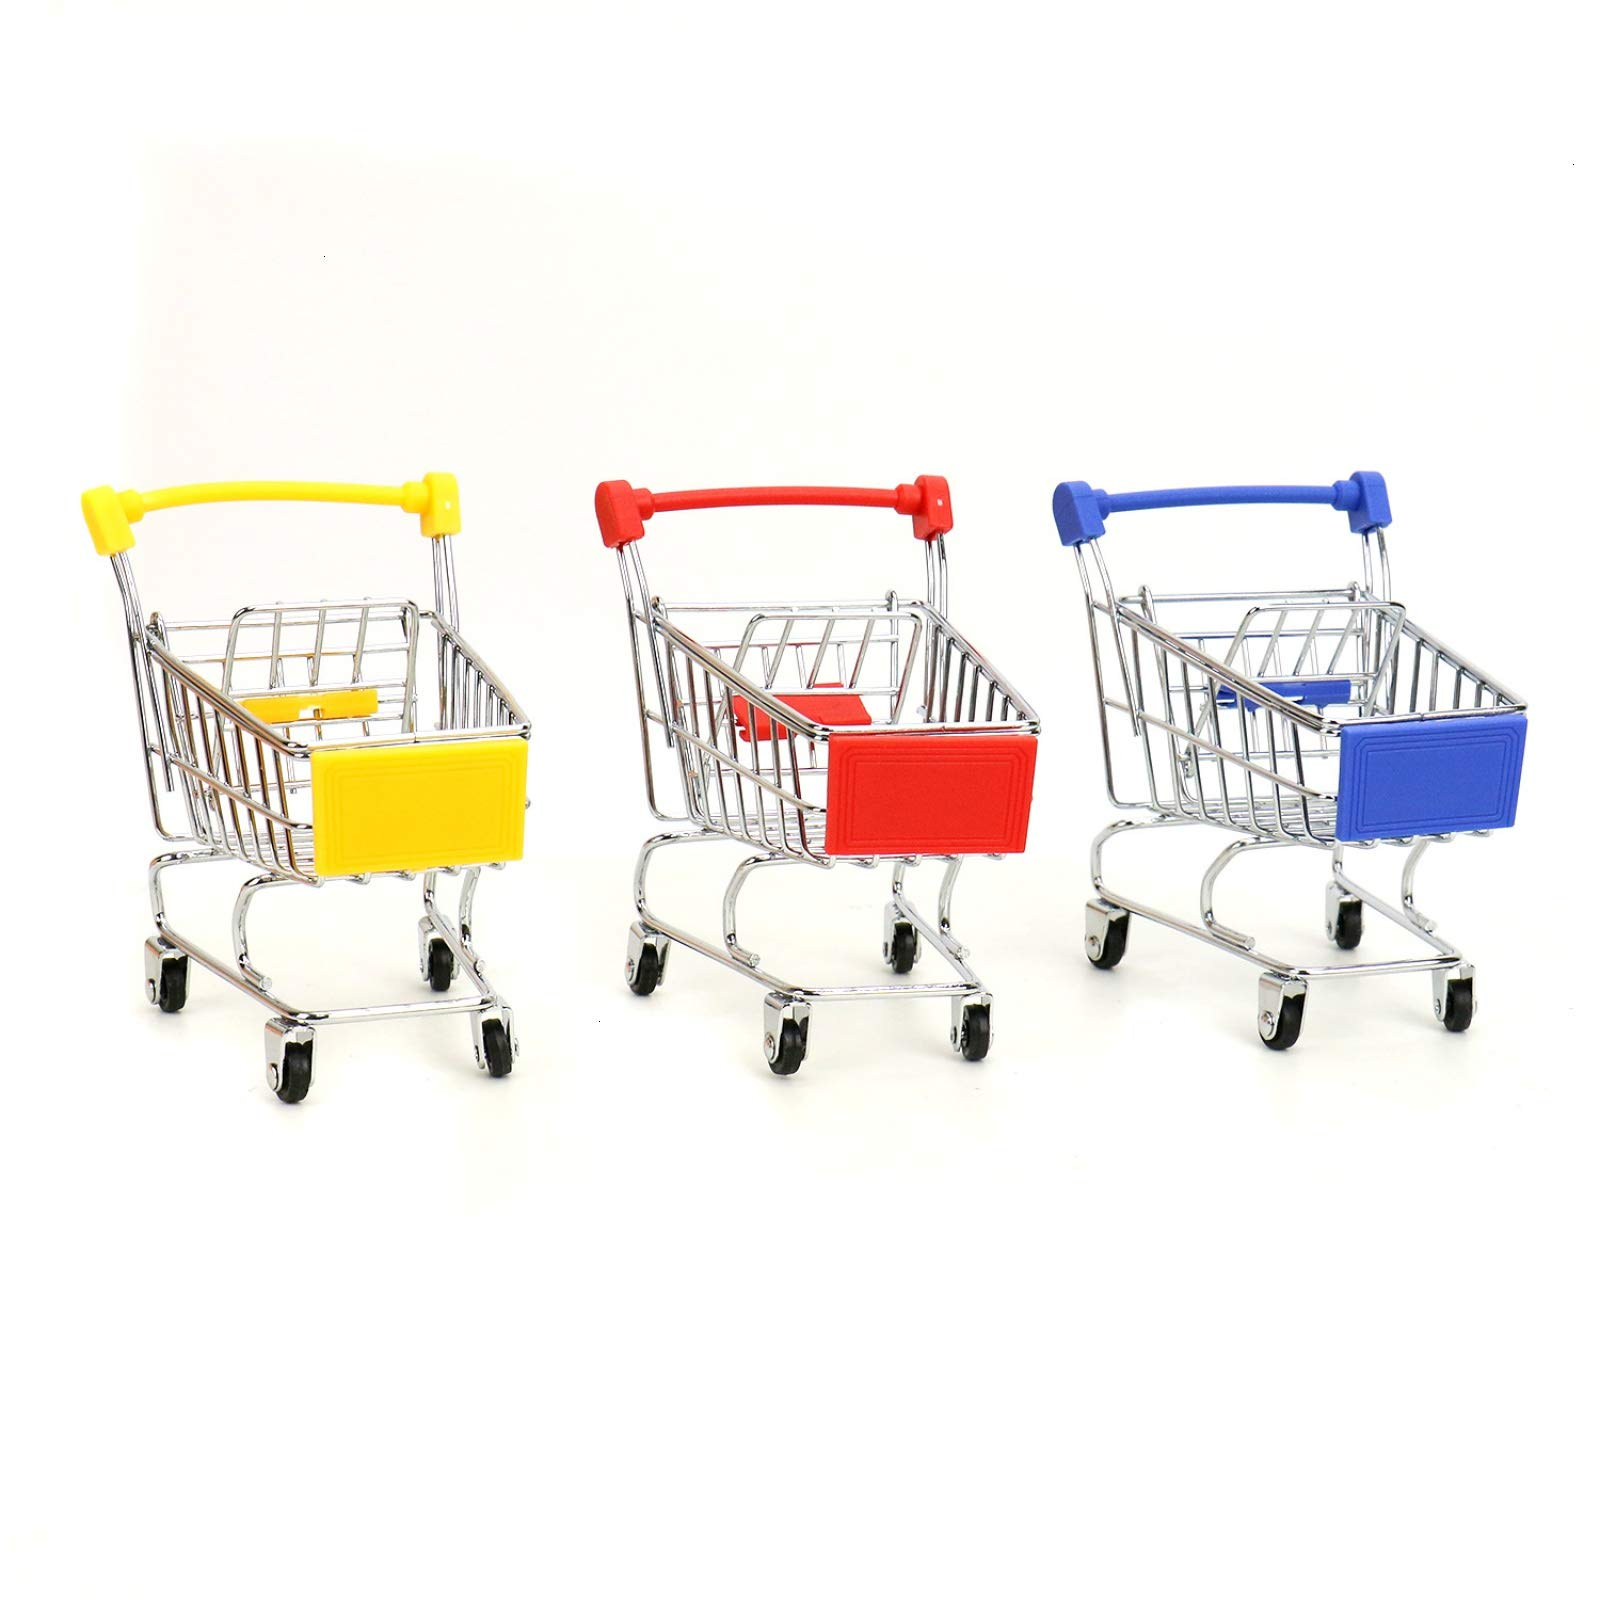 WSSROGY 3 Pack Mini Supermarket Handcart Cart Mode Storage Toy Table Office Novelty Decoration